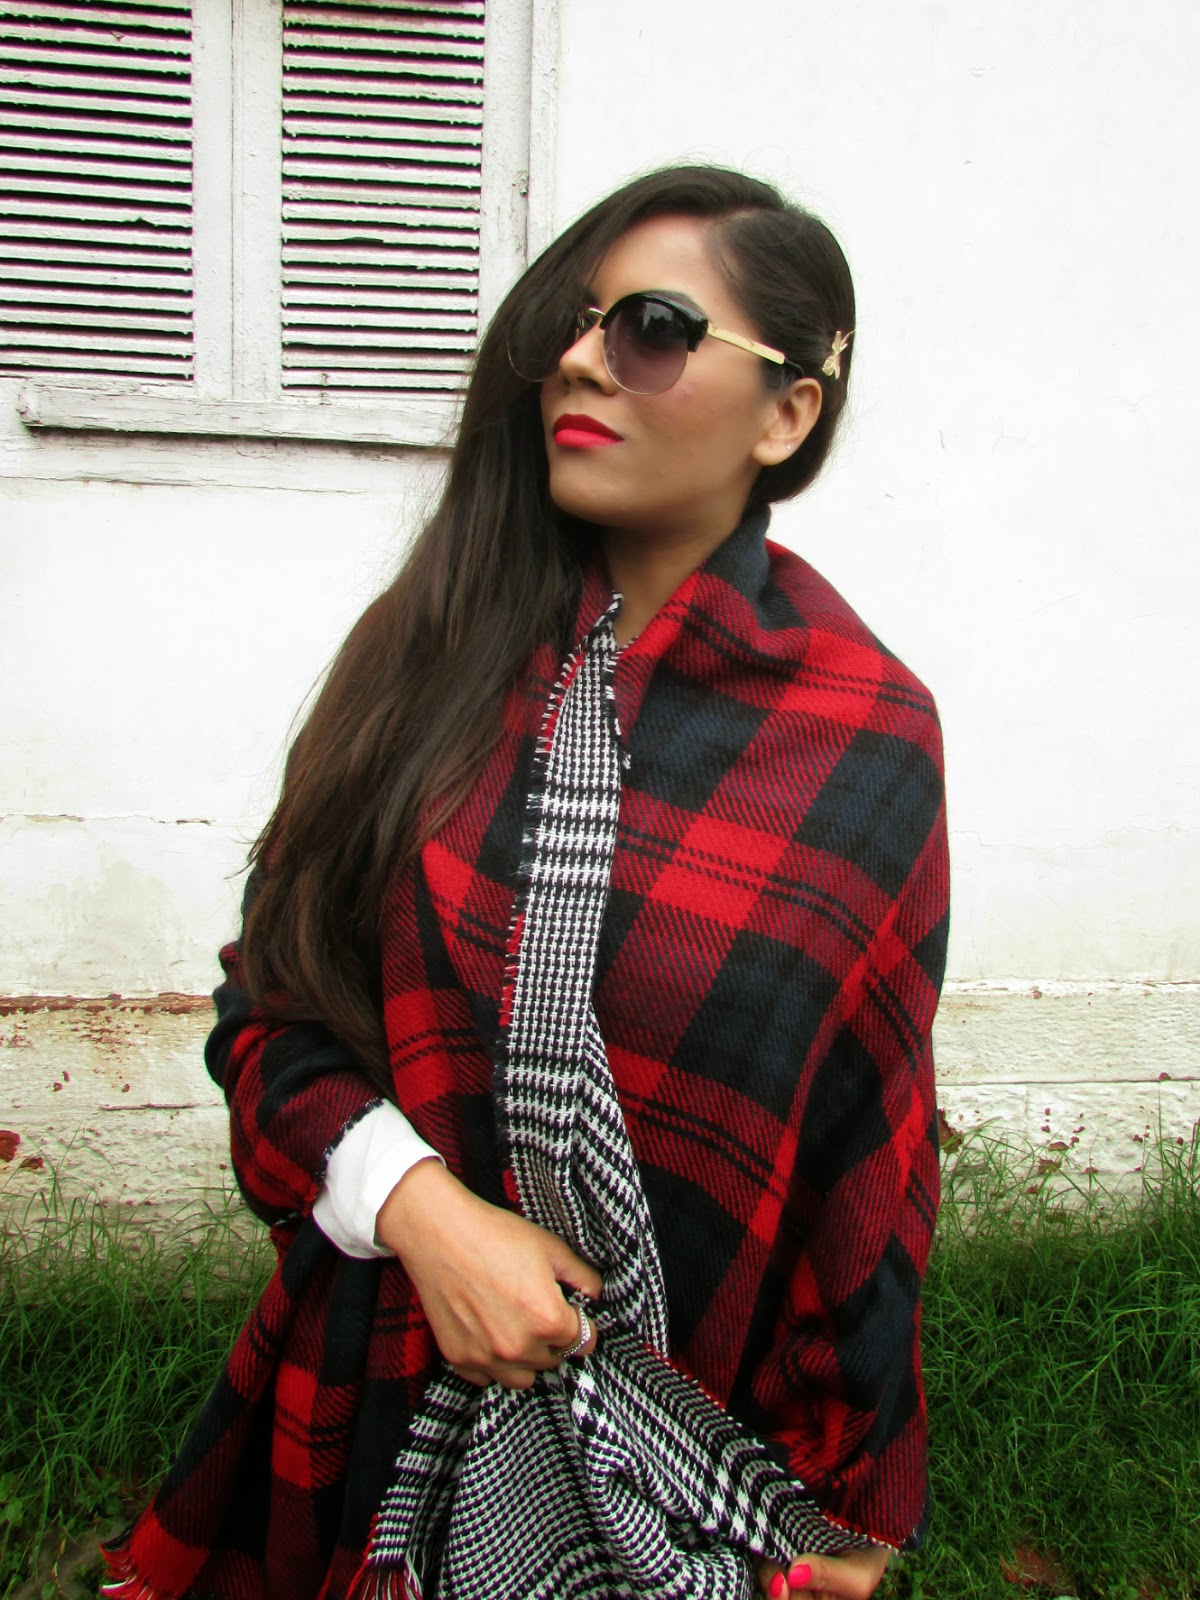 Plaid Tassel-Trim Scarf, plaid scarf, double sided plaid scarf, red plaid  scarf, black white plaid scarf, scarf cape, how to style plaid scarf, how to style cape, how to style plaid cape scarf, cheap scarf, oasap , oasap review, latest spring trends 2015, latest winter trend 2015,velvet leggings, how to style leggings, how to style velvet leggings, black velvet leggings, black leggings, fashion, winter trends 2015, black floral print leggings, Floral Detailed Skinny Leggings, cheap sunglasses india, cheap vintage sunglasses, fashion, OASAP, Sunglasses, vintage round sunglasses, vintage sunglasses,indian dahion bloggger, Statement necklace, necklace, statement necklaces, big necklace, heavy necklaces , gold necklace, silver necklace, silver statement necklace, gold statement necklace, studded statement necklace , studded necklace, stone studded necklace, stone necklace, stove studded statement necklace, stone statement necklace, stone studded gold statement necklace, stone studded silver statement necklace, black stone necklace, black stone studded statement necklace, black stone necklace, black stone statement necklace, neon statement necklace, neon stone statement necklace, black and silver necklace, black and gold necklace, blank and silver statement necklace, black and gold statement necklace, silver jewellery, gold jewellery, stove jewellery, stone studded jewellery, imitation jewellery, artificial jewellery, junk jewellery, cheap jewellery ,oasap Statement necklace, oasap necklace, oasap statement necklaces,oasap big necklace, oasap heavy necklaces , oasap gold necklace, oasap silver necklace, oasap silver statement necklace,oasap gold statement necklace, oasap studded statement necklace , oasap studded necklace, oasap stone studded necklace, oasap stone necklace, oasap stove studded statement necklace, oasap stone statement necklace, oasap stone studded gold statement necklace, oasap stone studded silver statement necklace, oasap black stone necklace, oasap b